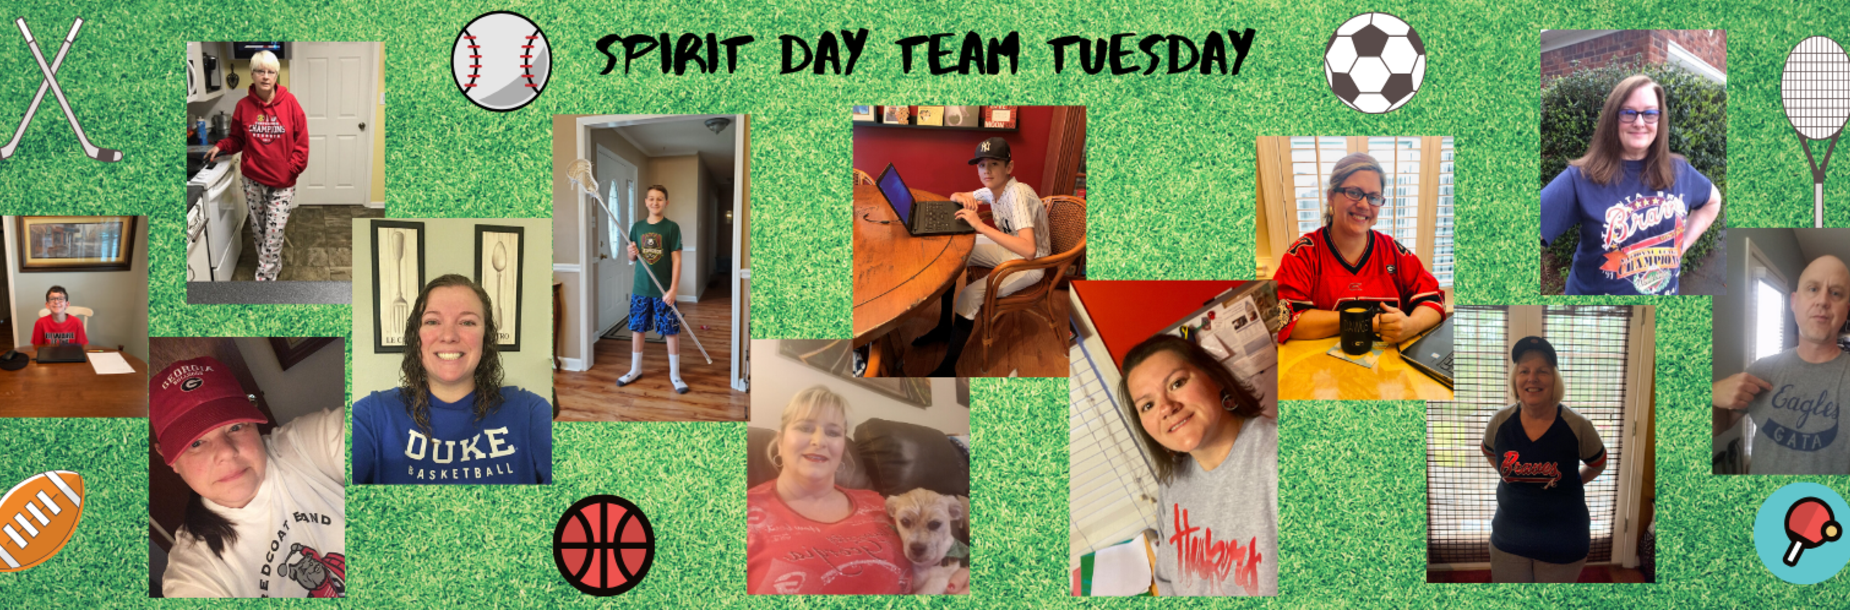 Teachers and students dressed in sports spirit day attire